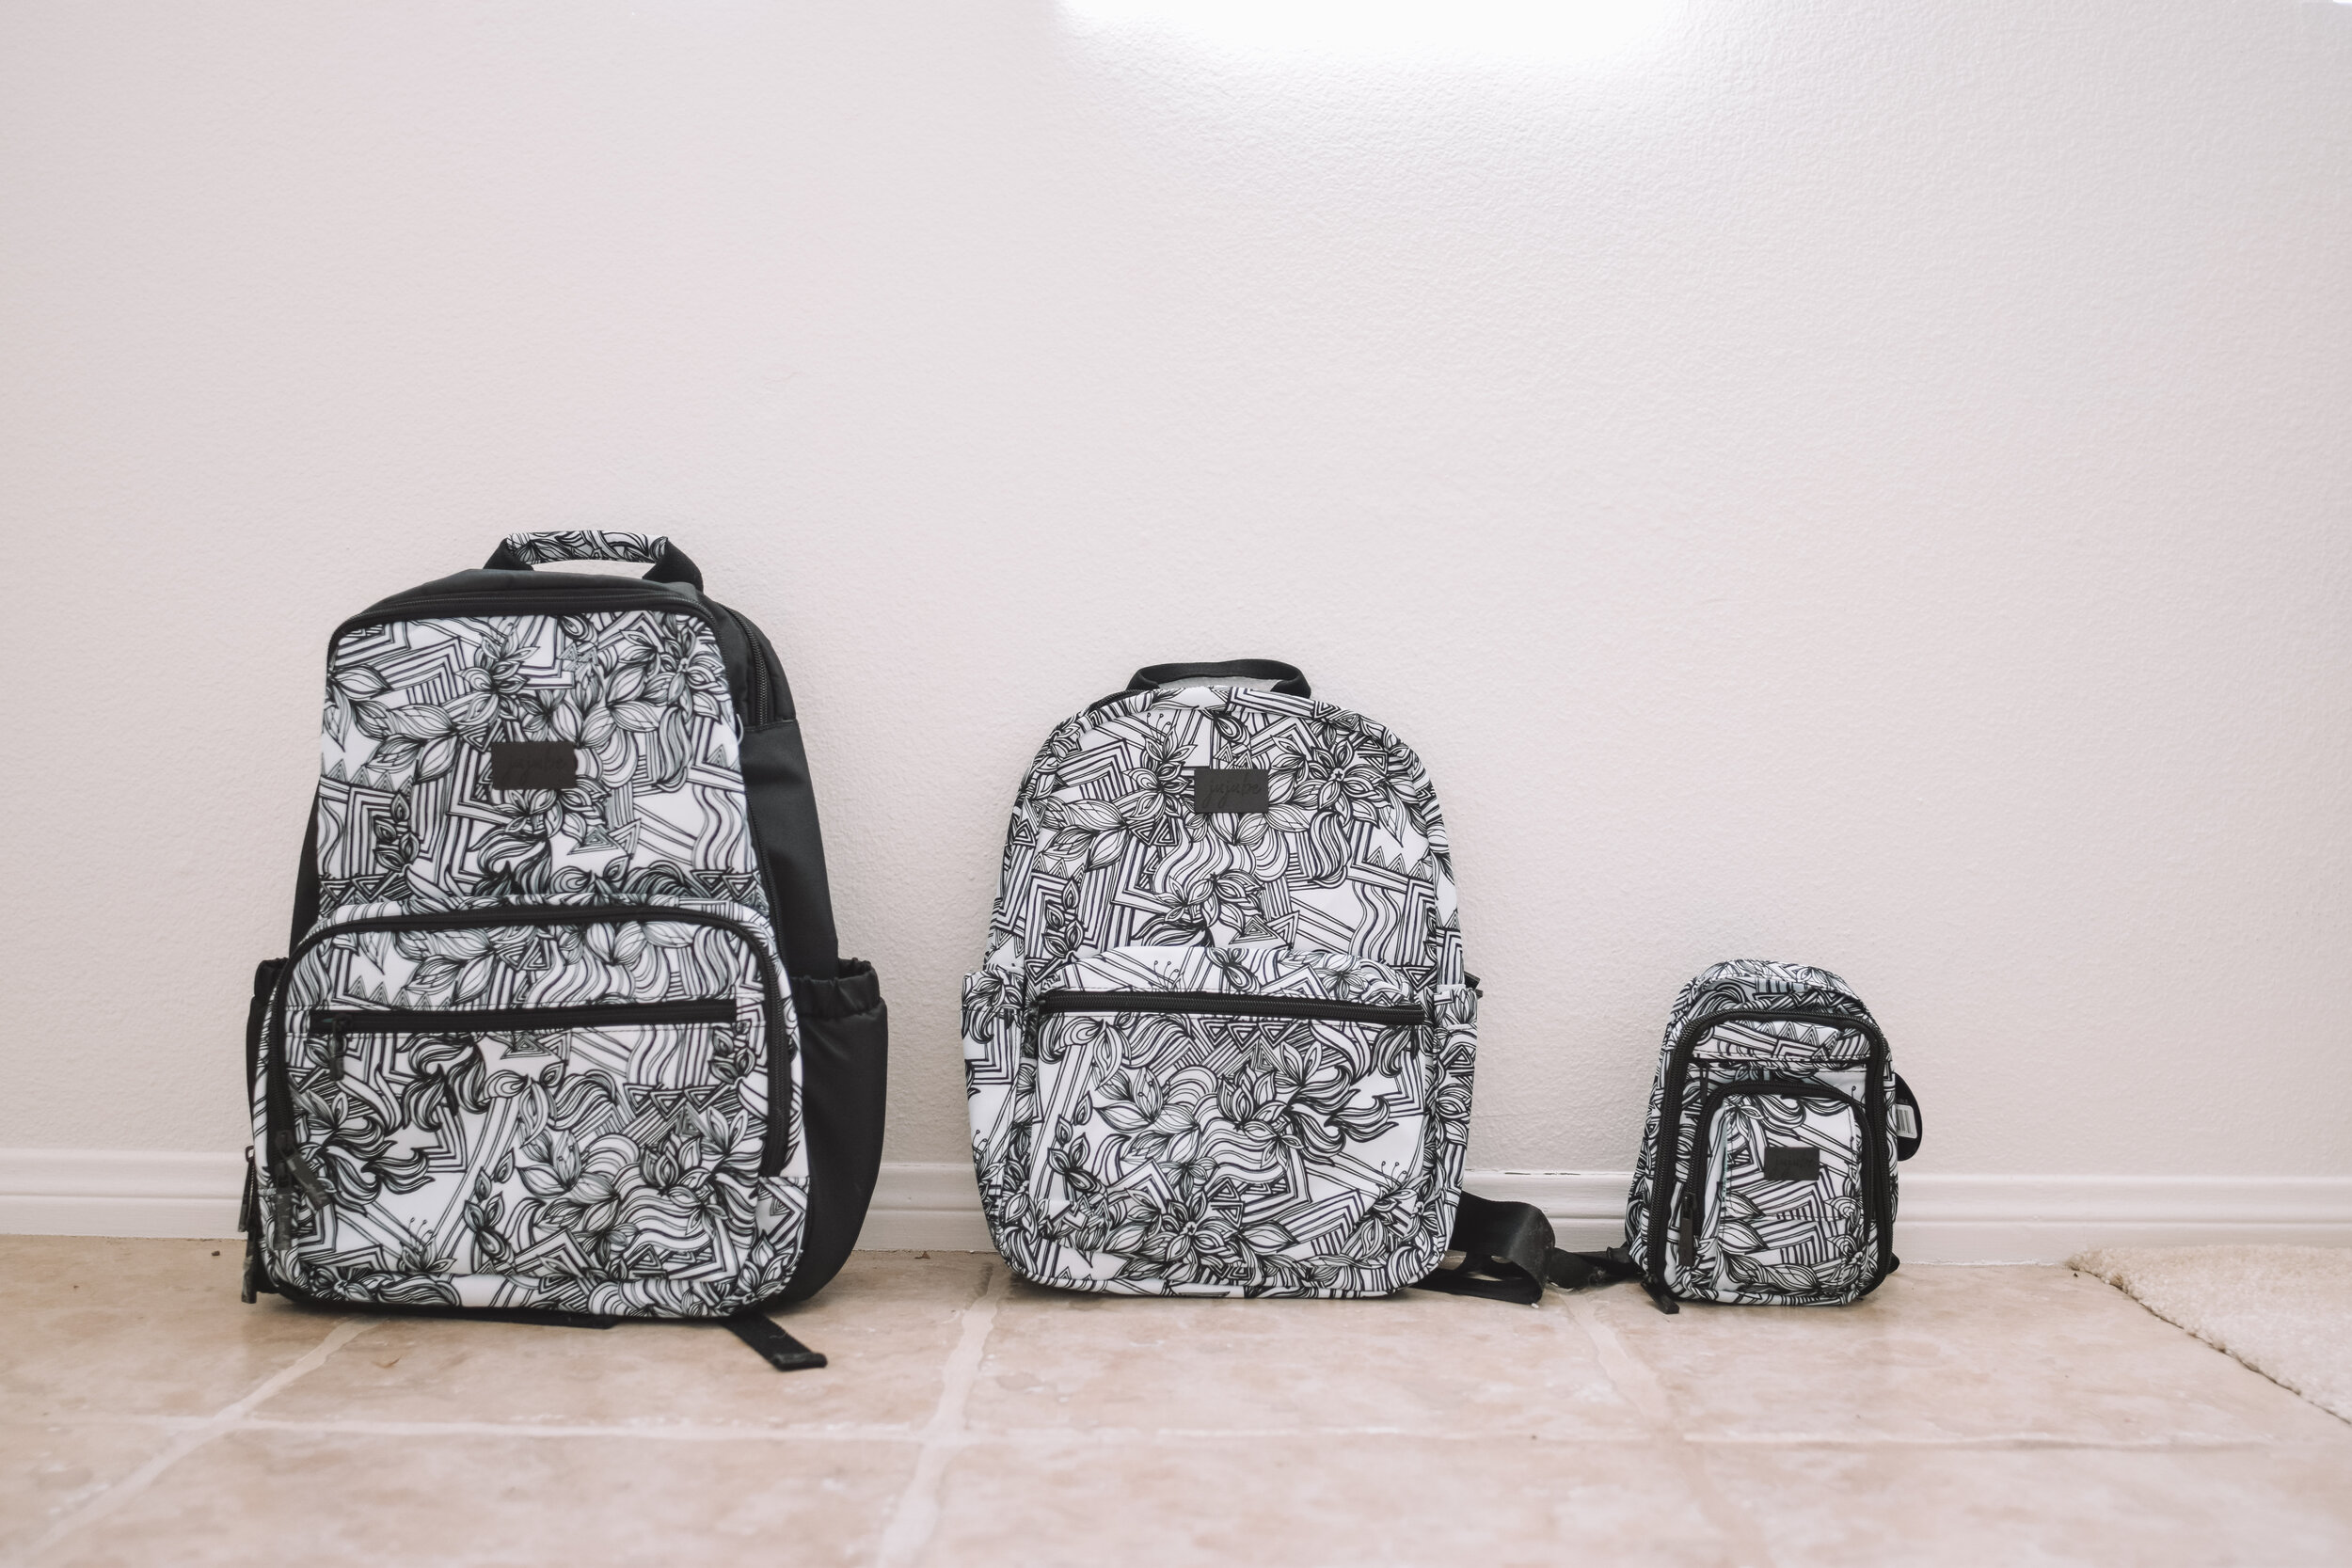 JuJuBe Sketch Mini BRB, Be Zealous, Midi Backpack - The Overwhelmed Mommy Blogger